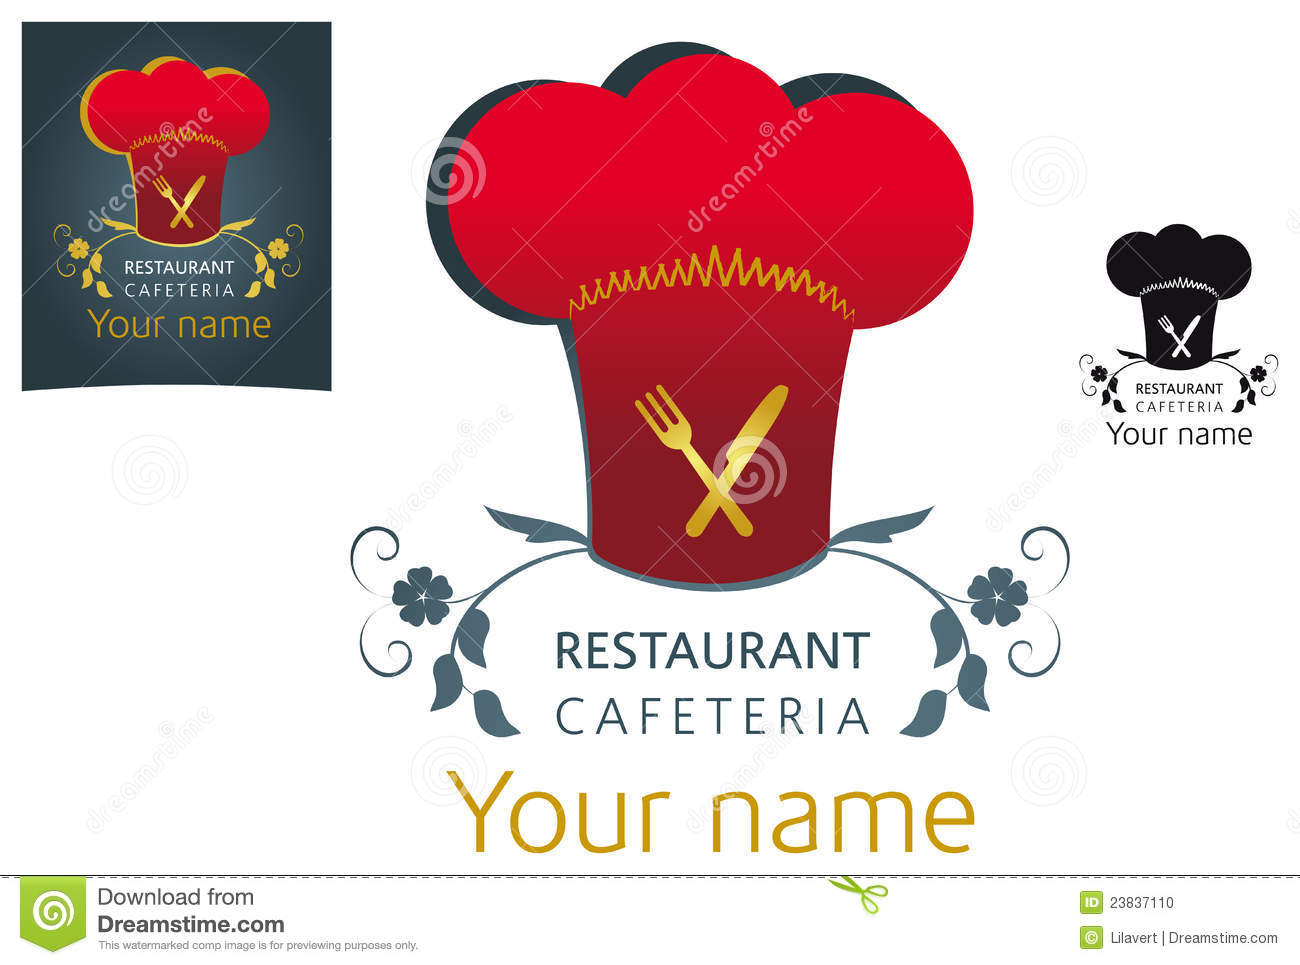 FREE 35 Examples of Restaurant Logo in PSD  AI  Vector